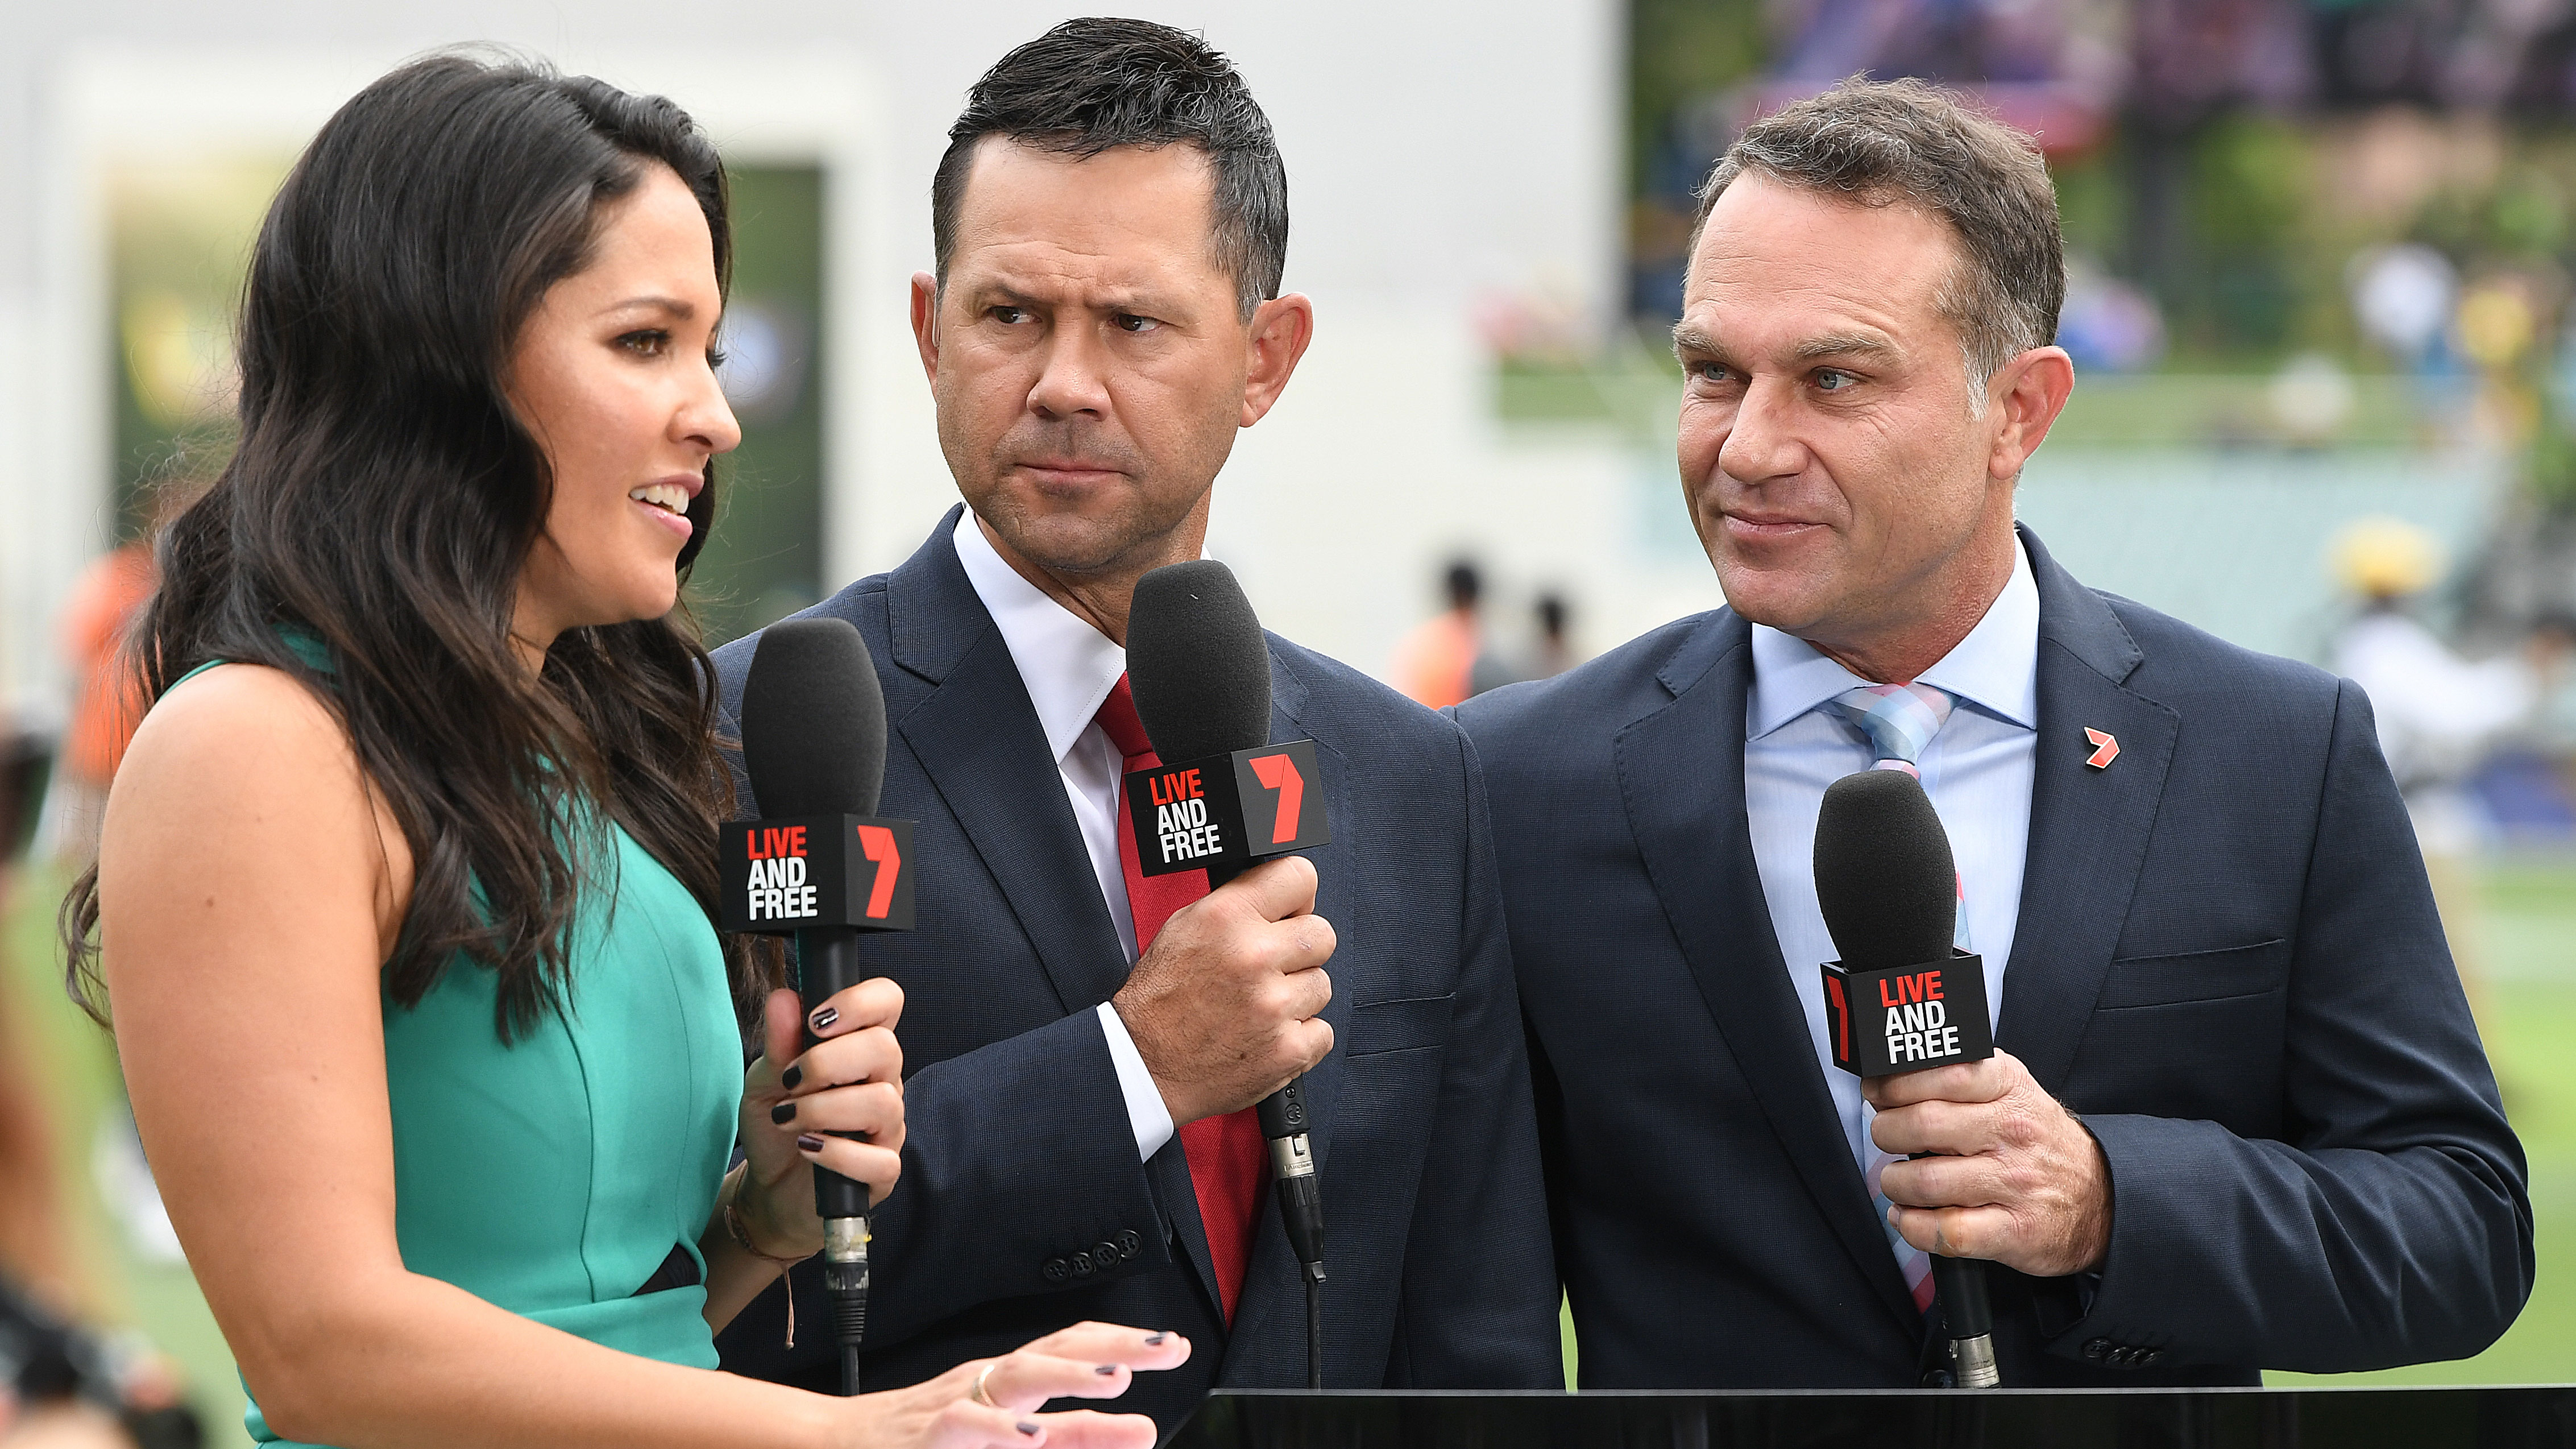 Michael Slater (right) is a cricket commentator for Channel 7.